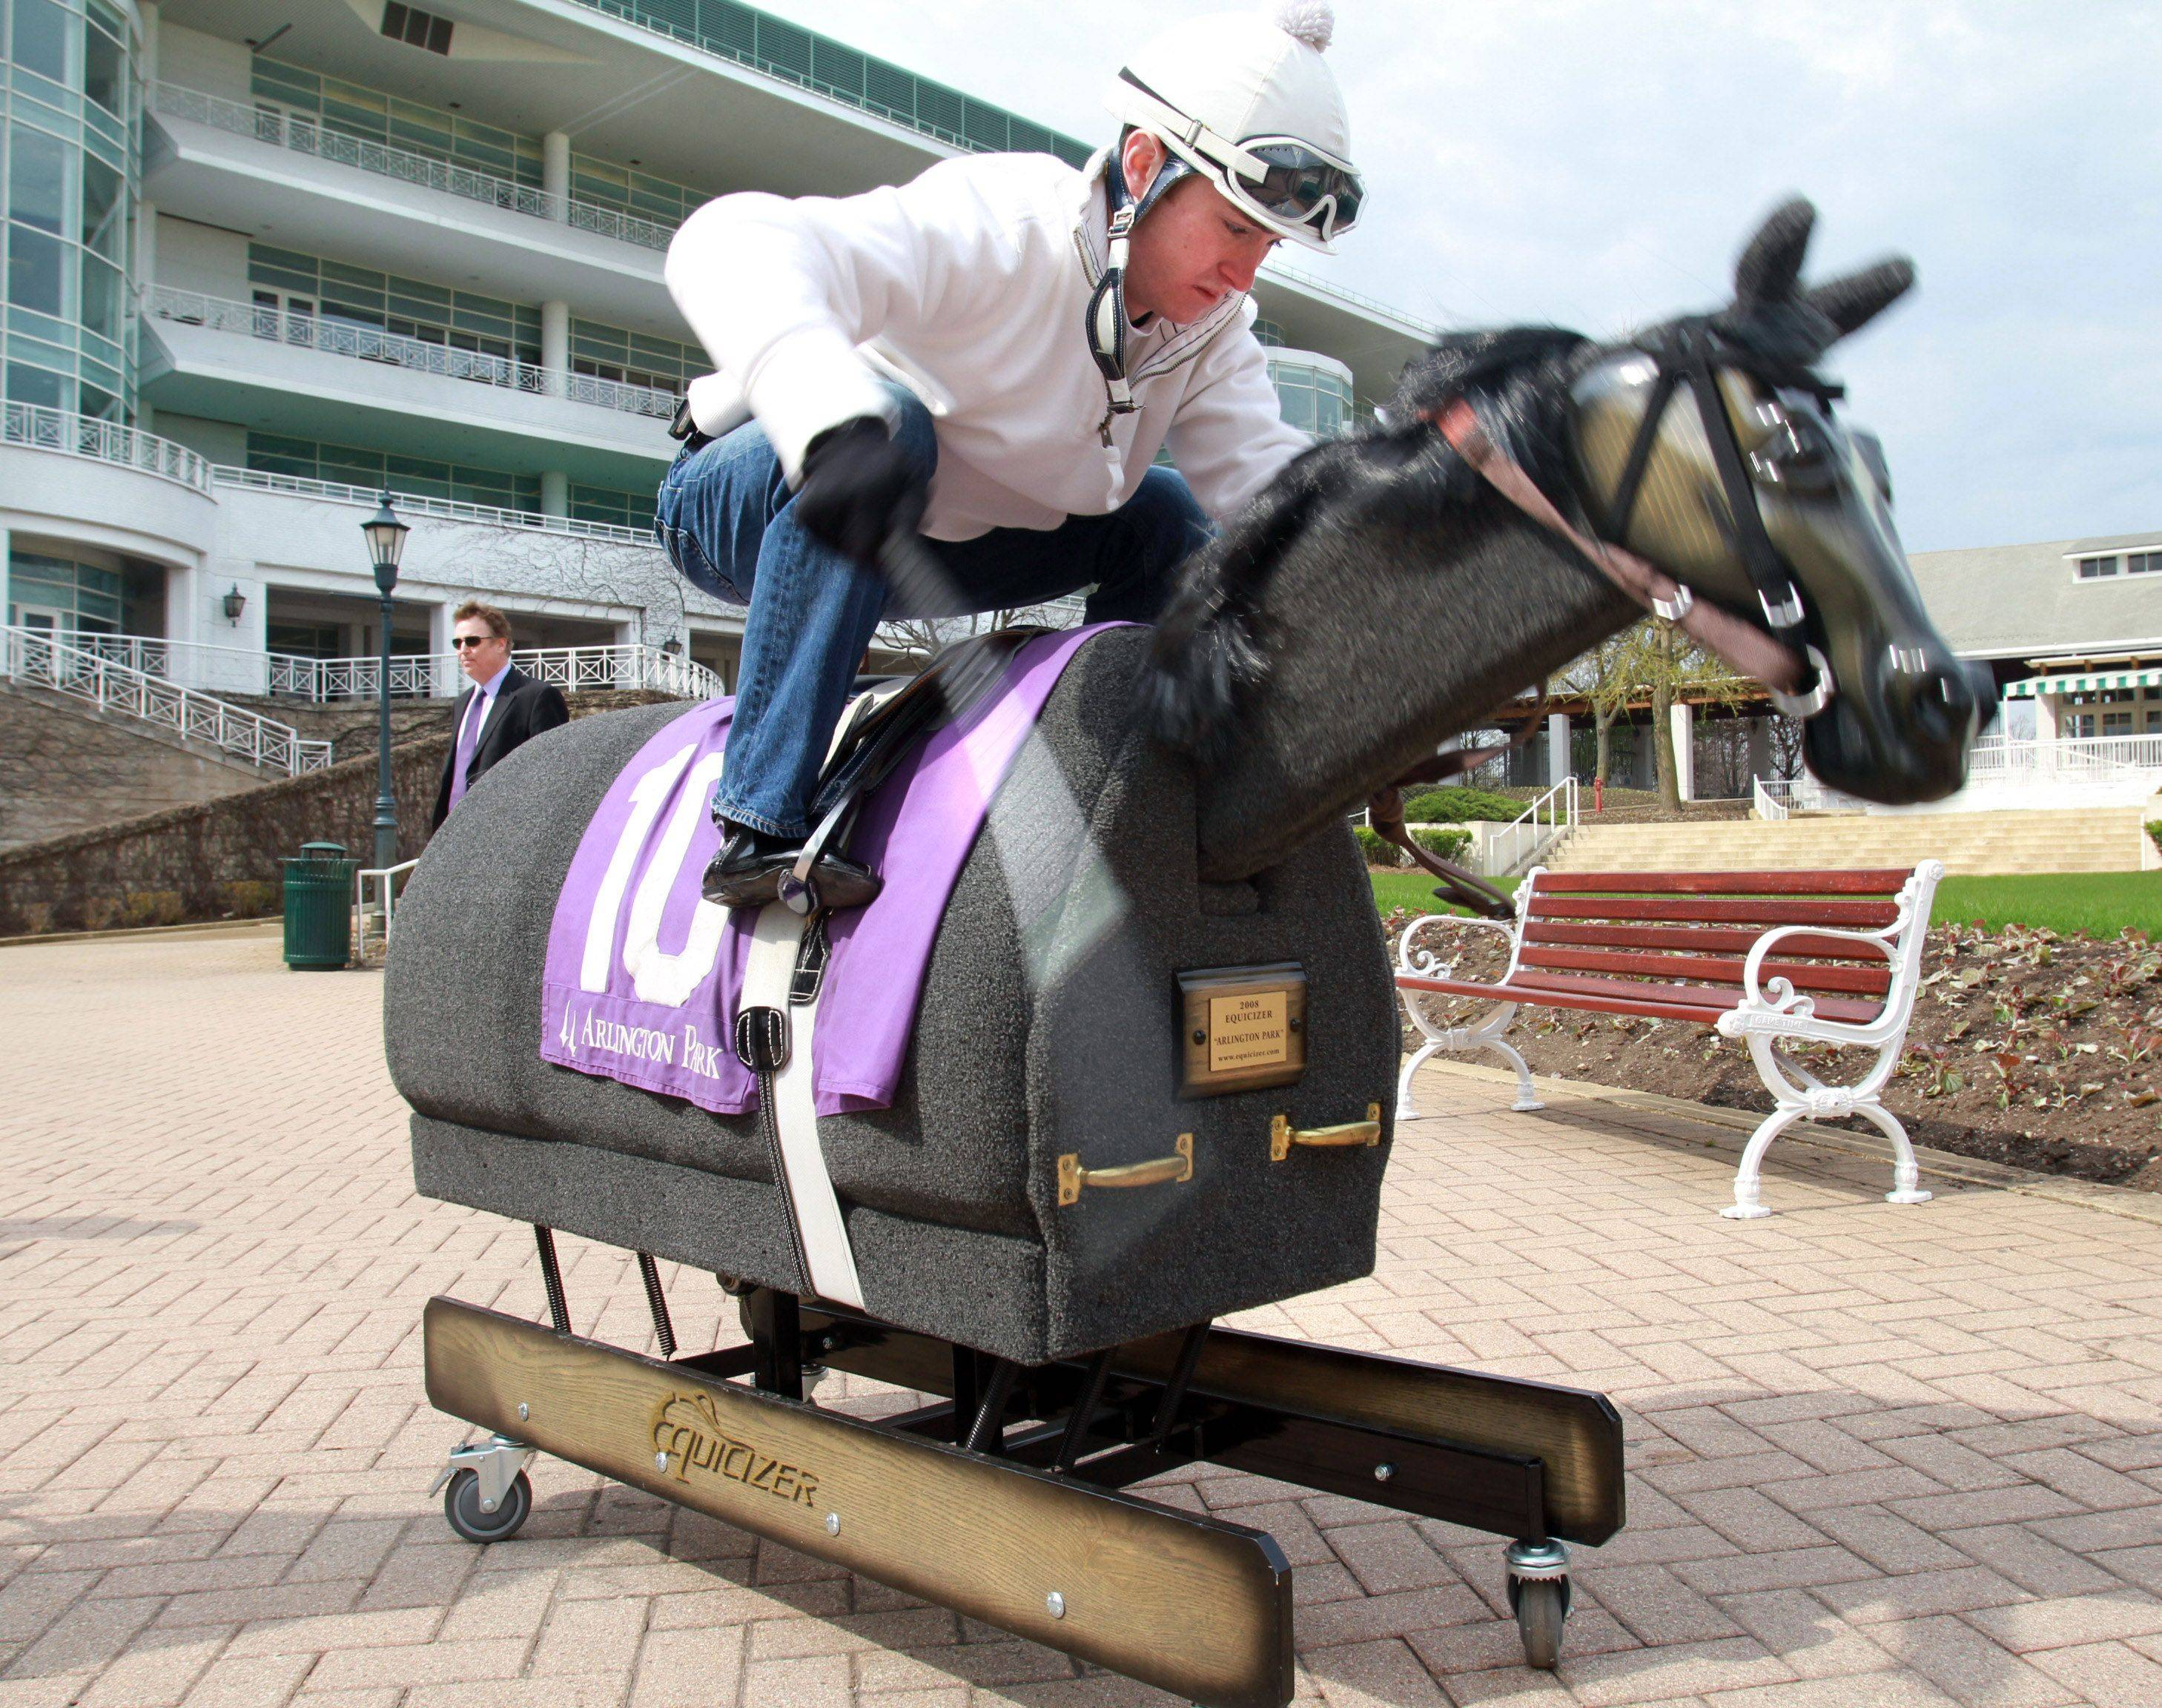 Jockey Josh Molitor, 19, trains on an Equicizer at Arlington Park. Riding the apparatus, which moves like a horse and helps jockeys perfect their style, is hard work, he said.